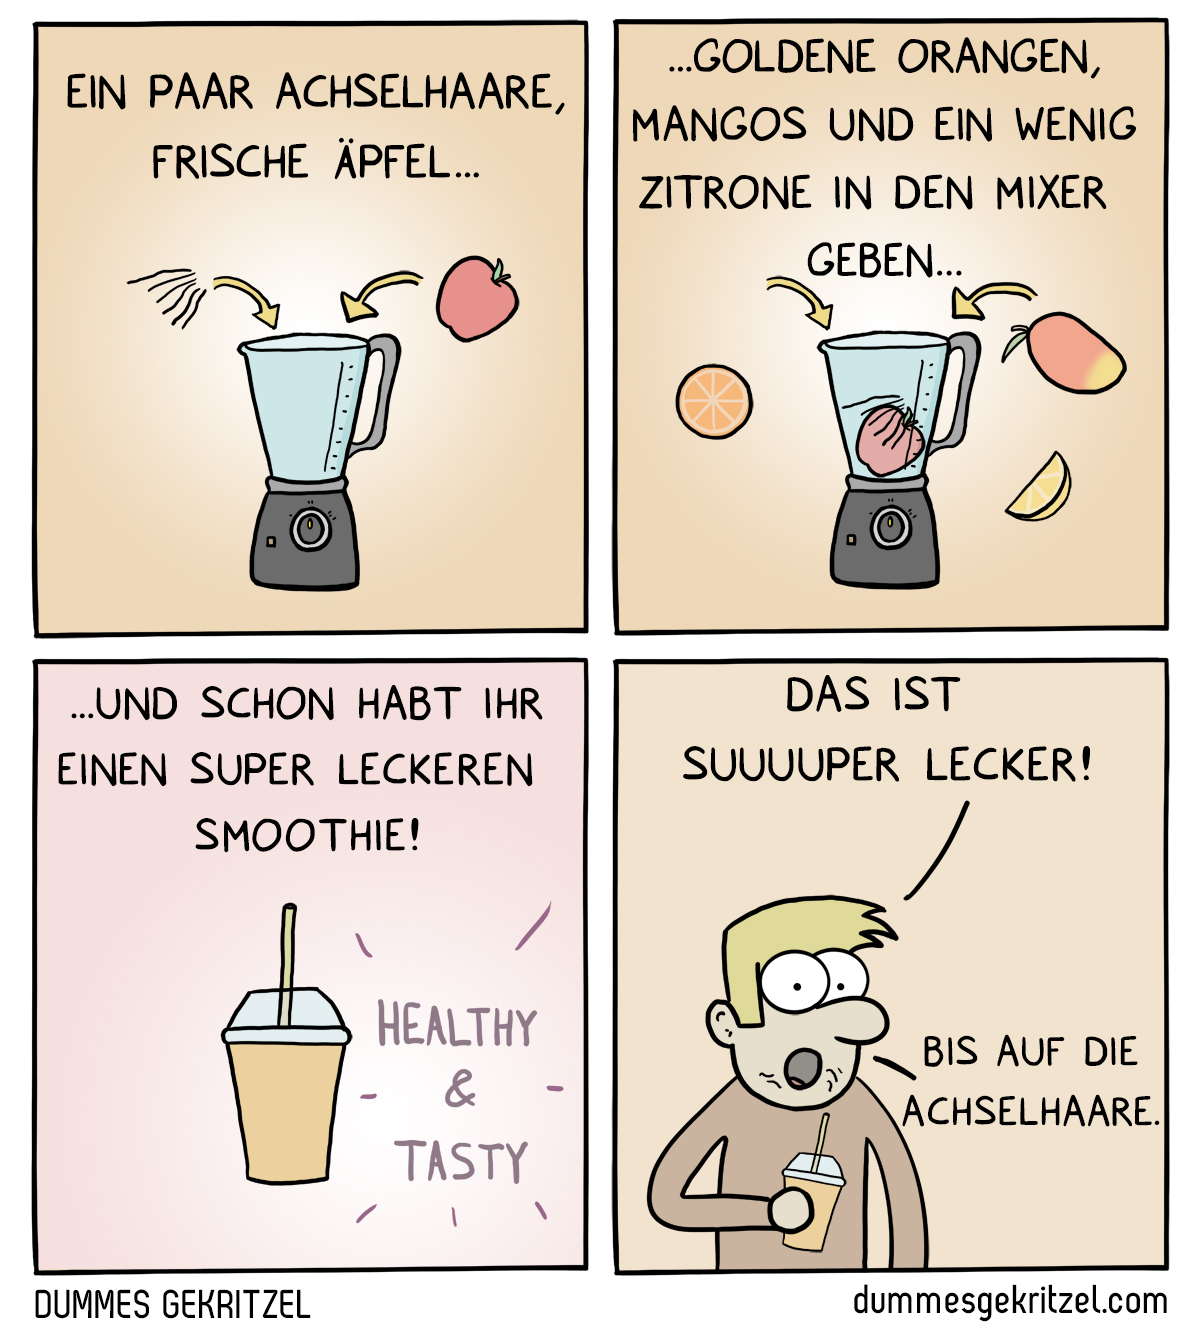 Leckerer Smoothie